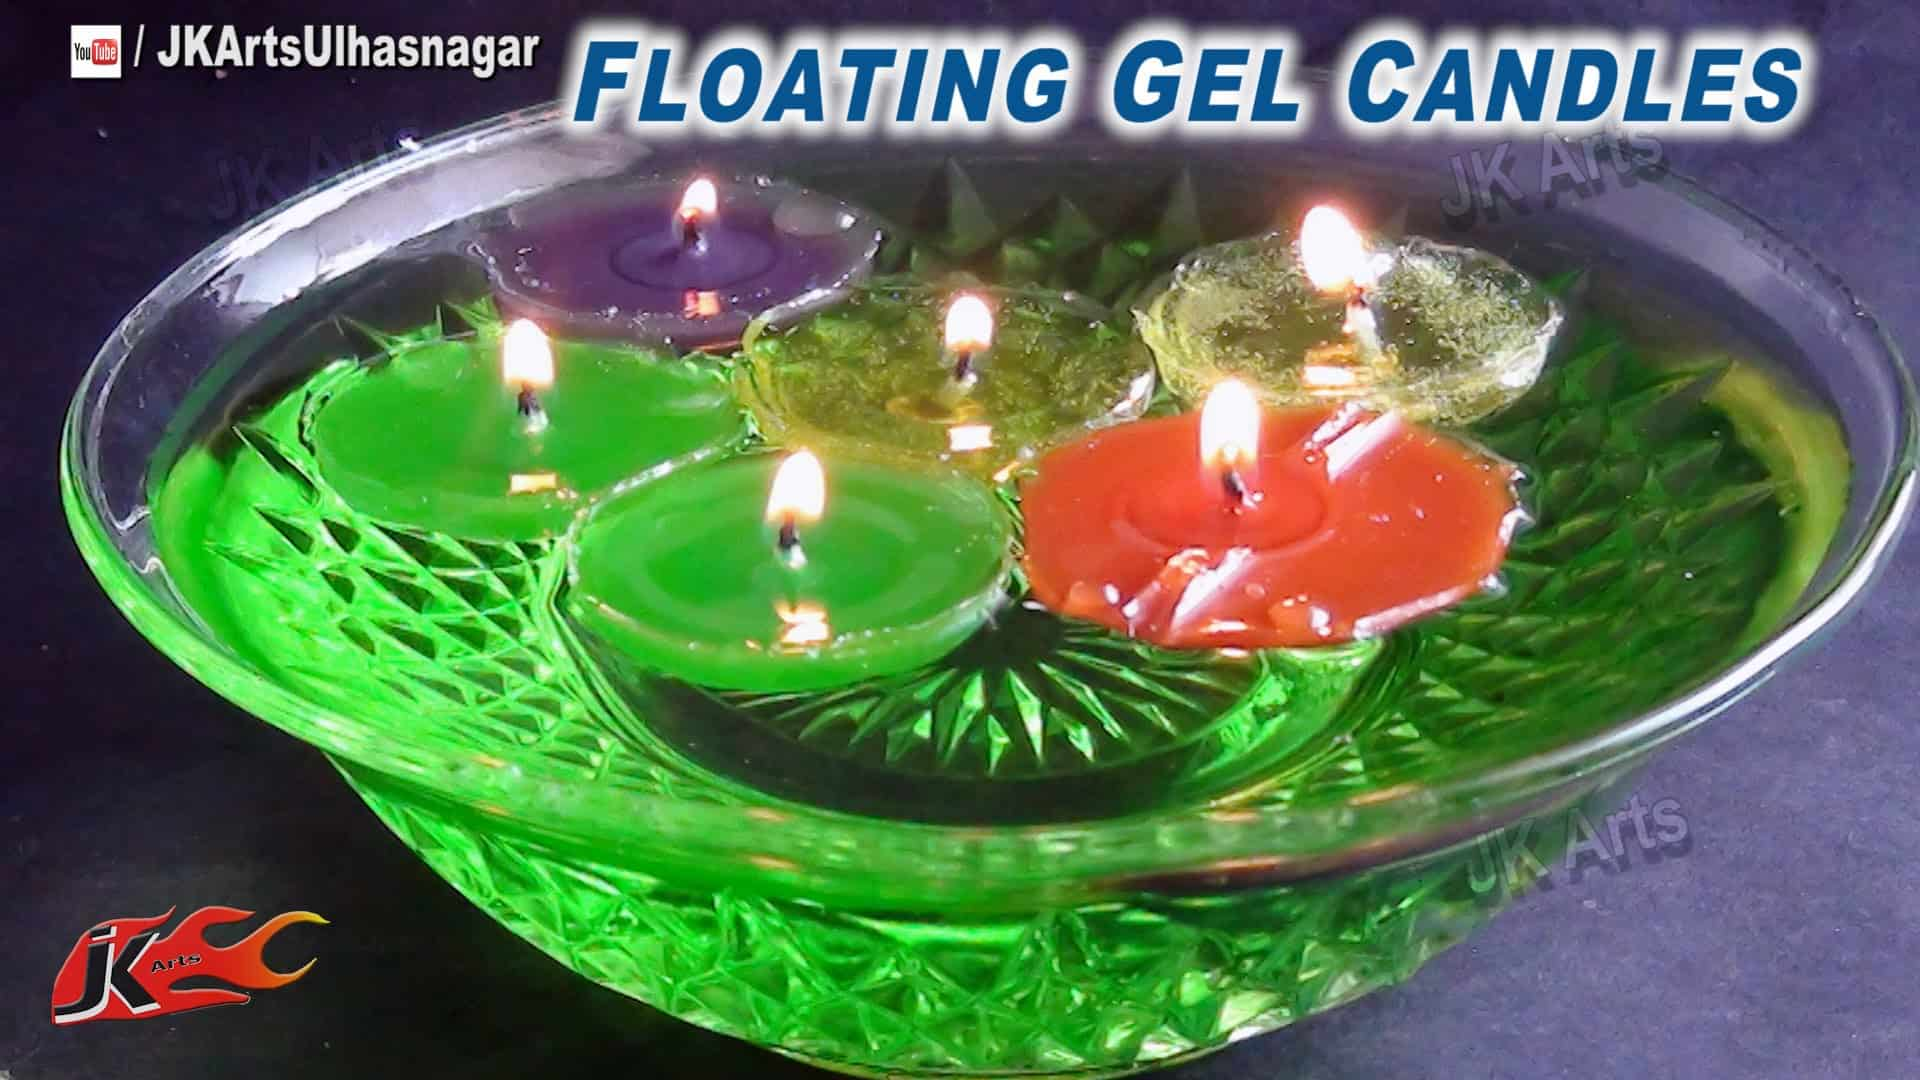 Floating gel candles